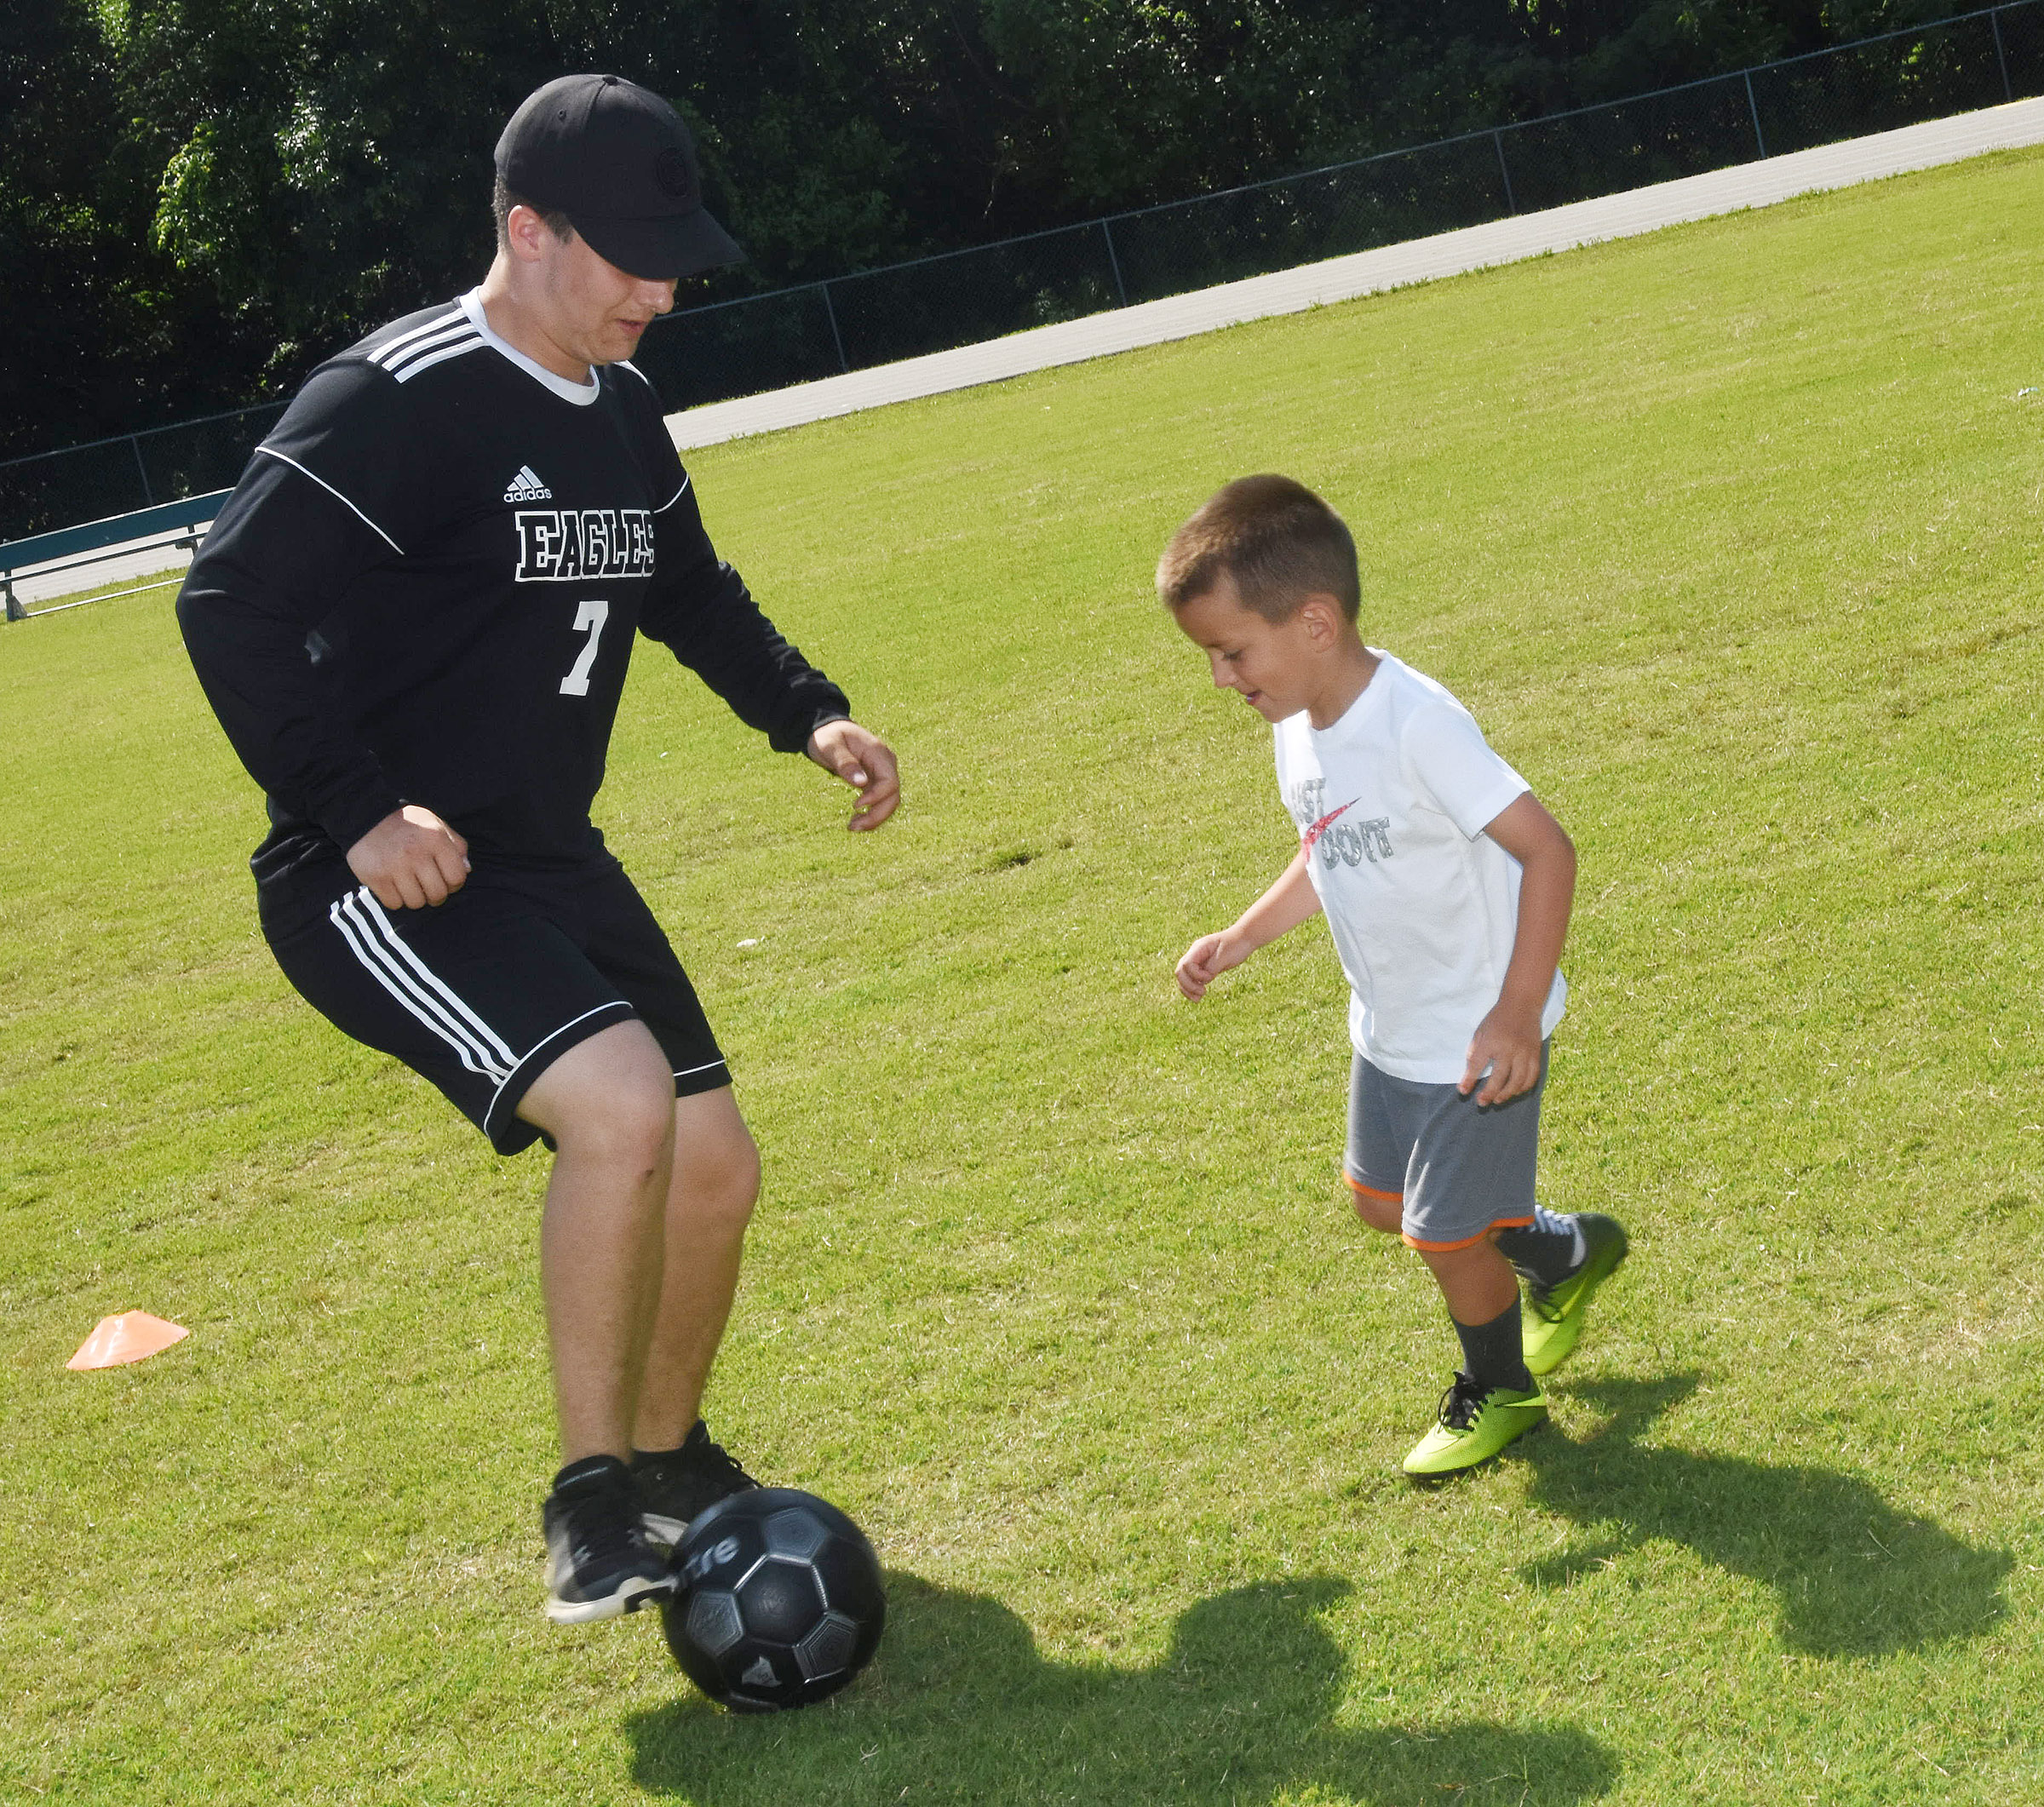 CHS senior and soccer player Brody Week leads a drill with Will Davis.